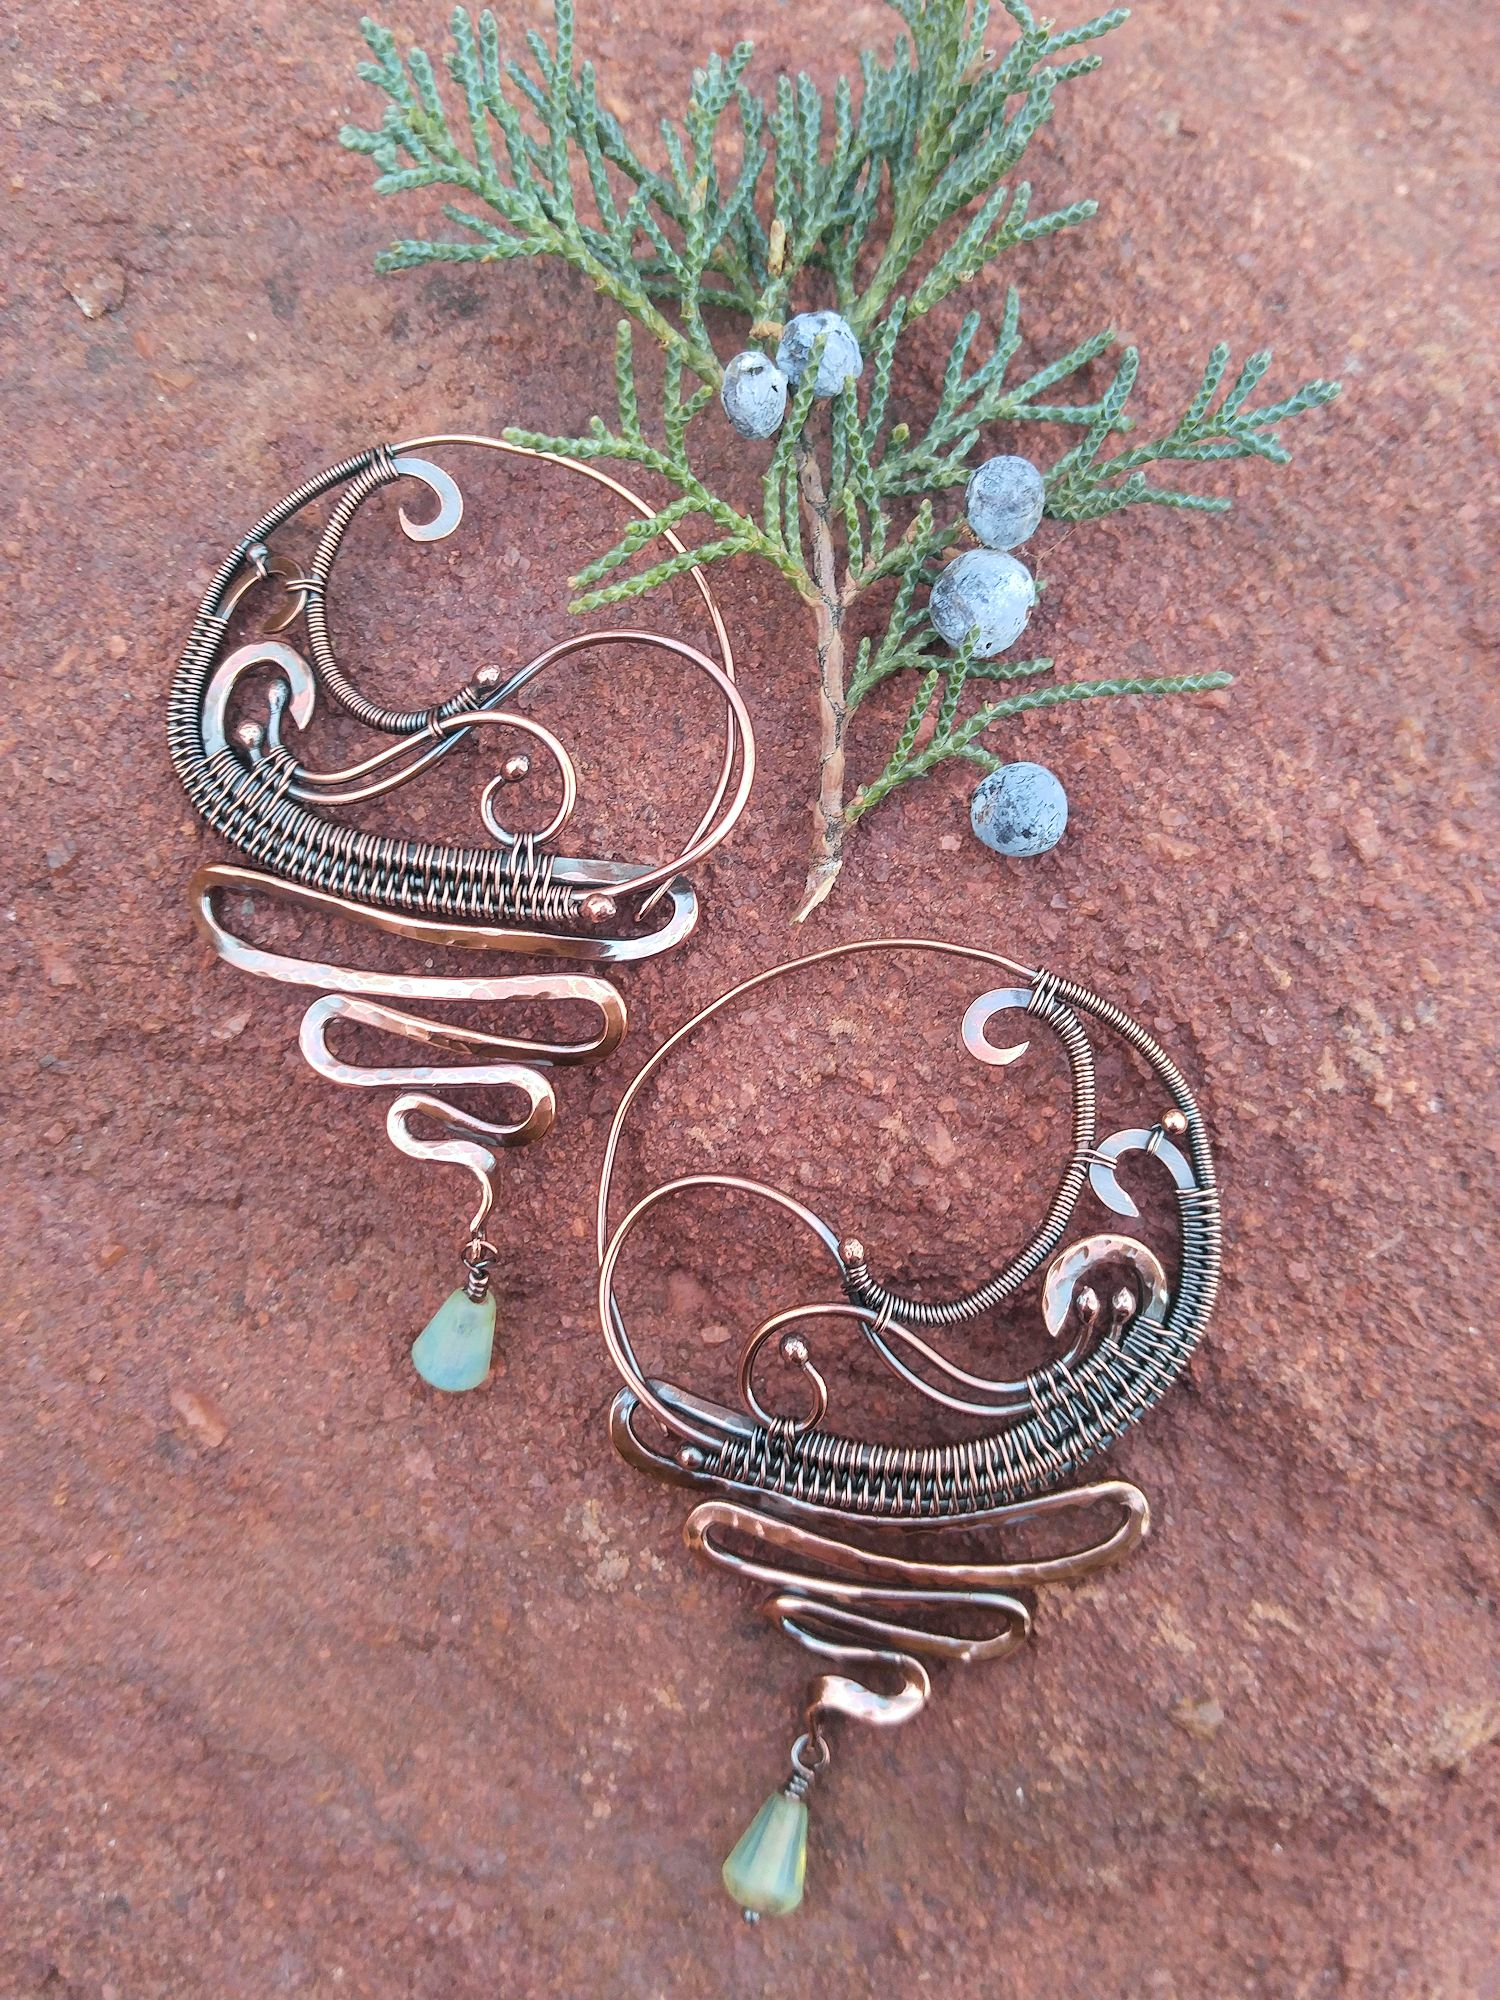 The Scribble Earrings - Design by Sarah Thompson, Fabricated by Wendi Reamy